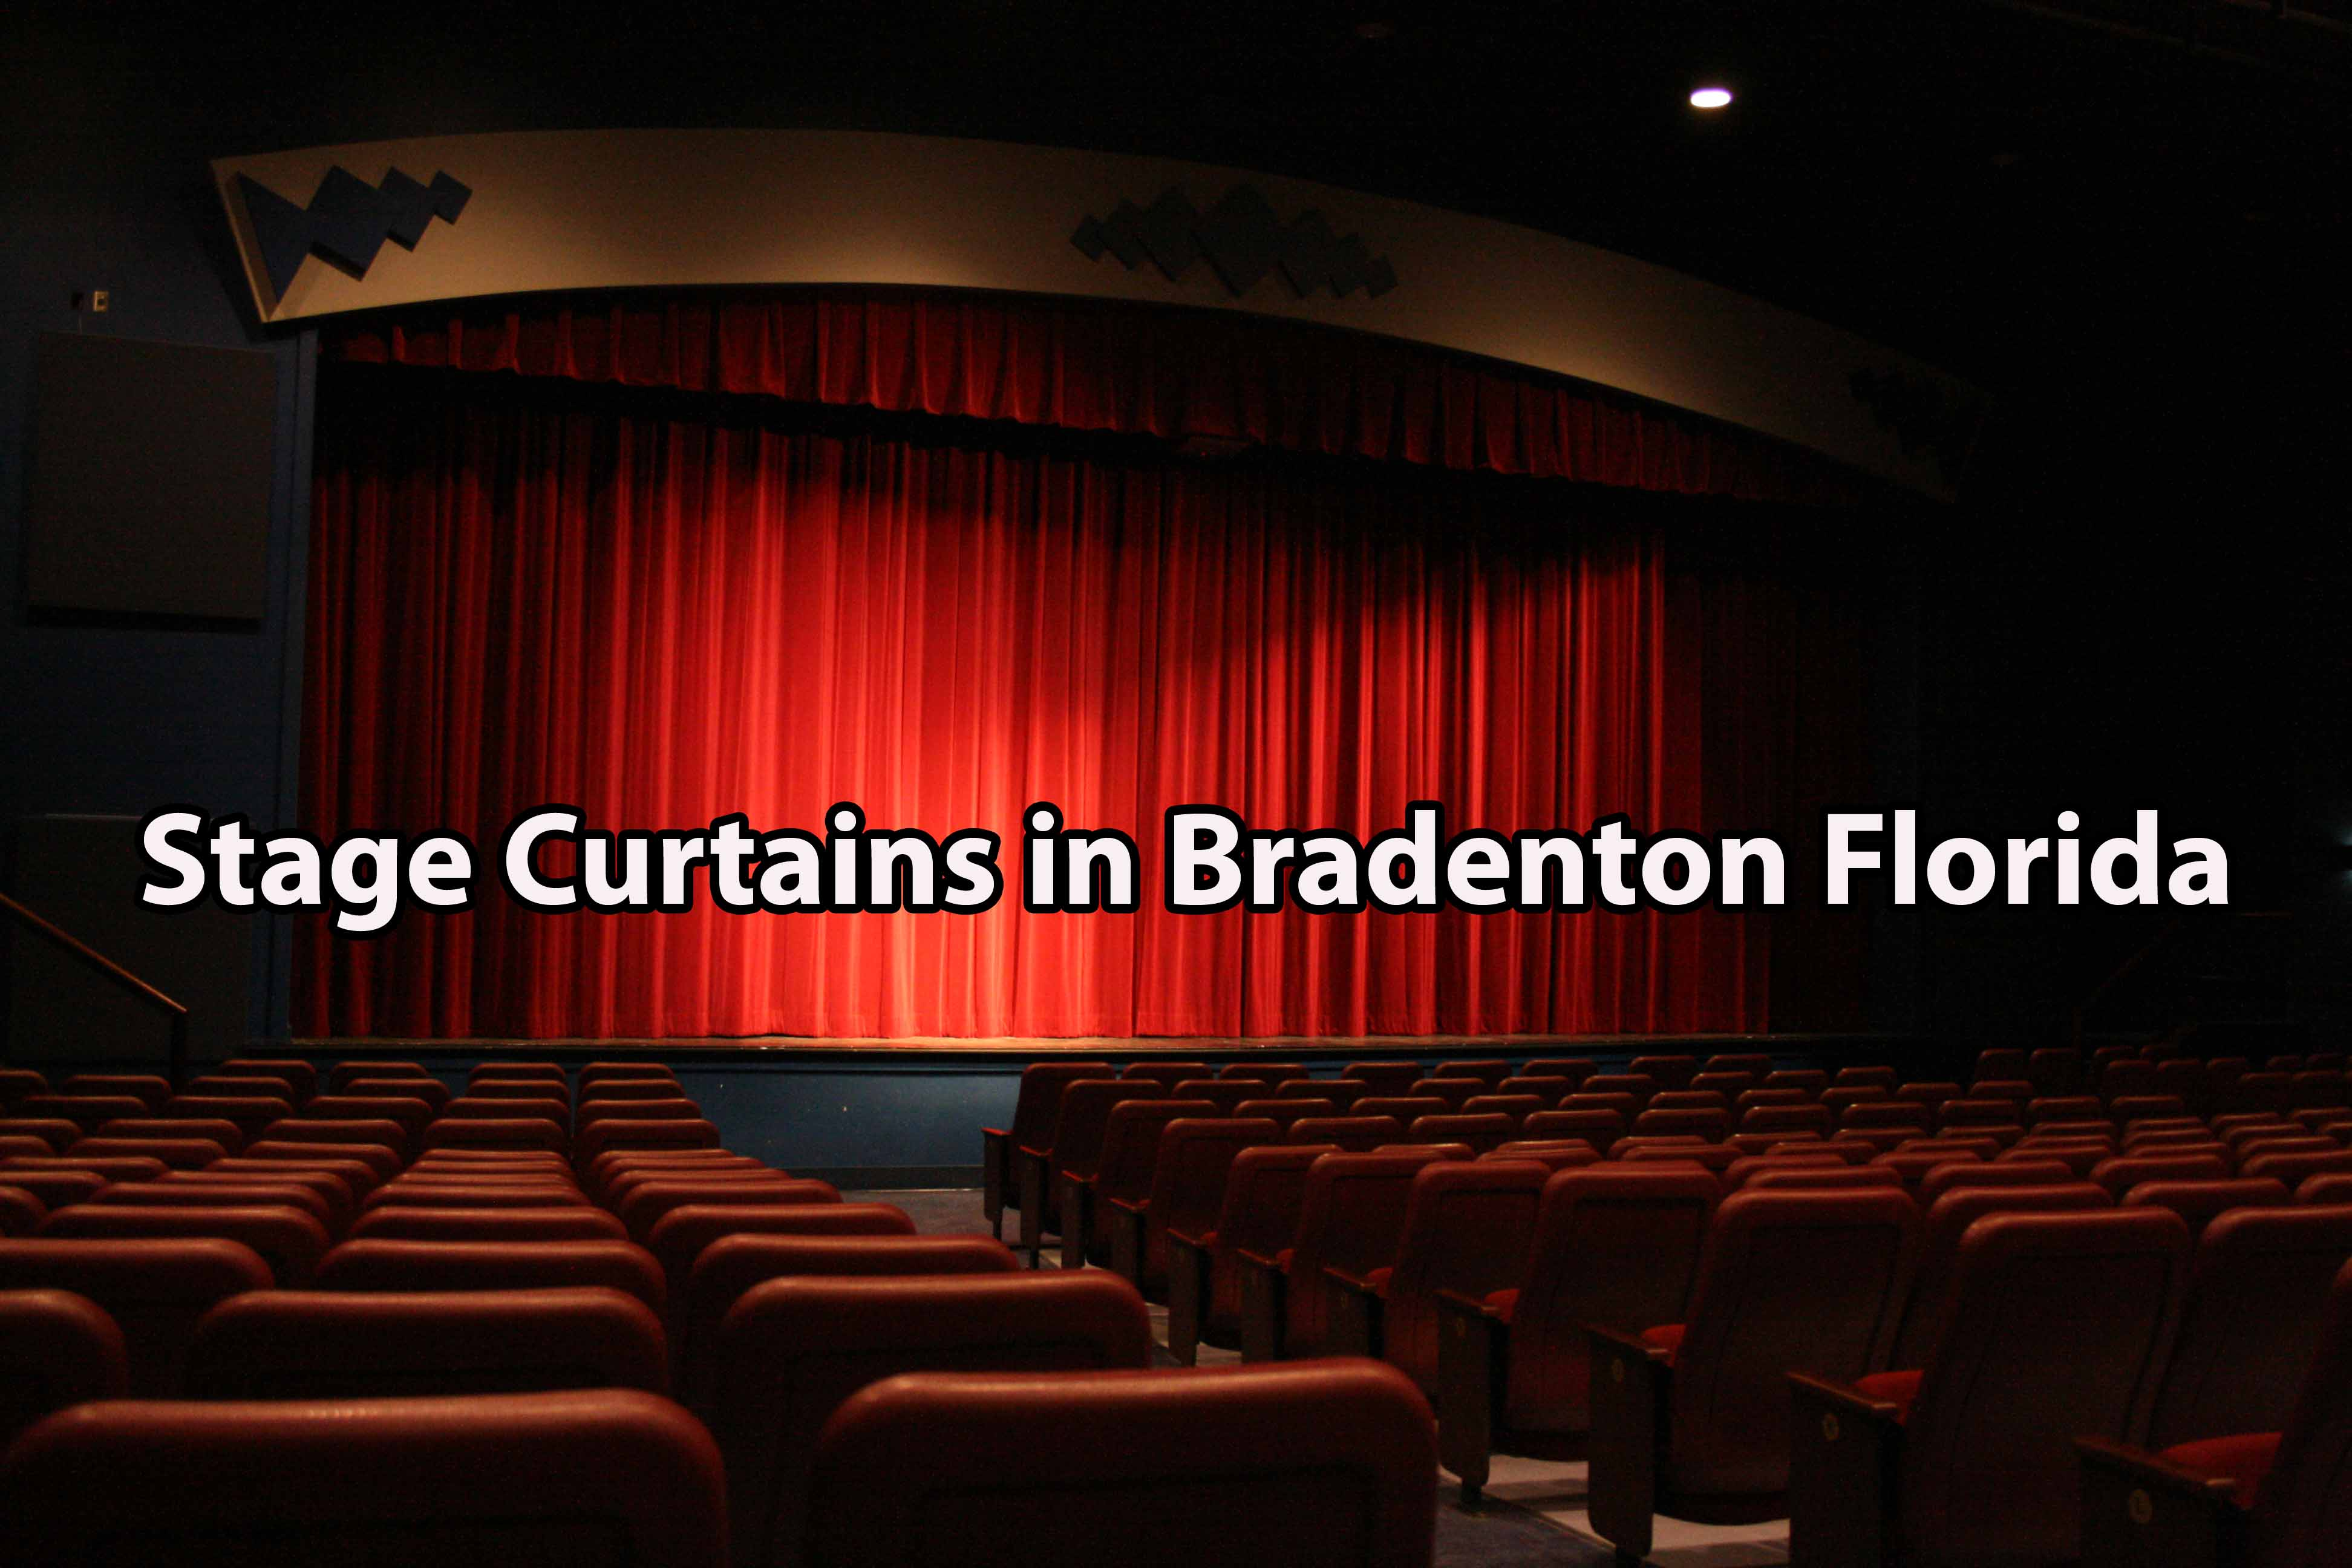 Stage Curtains in Bradenton Florida